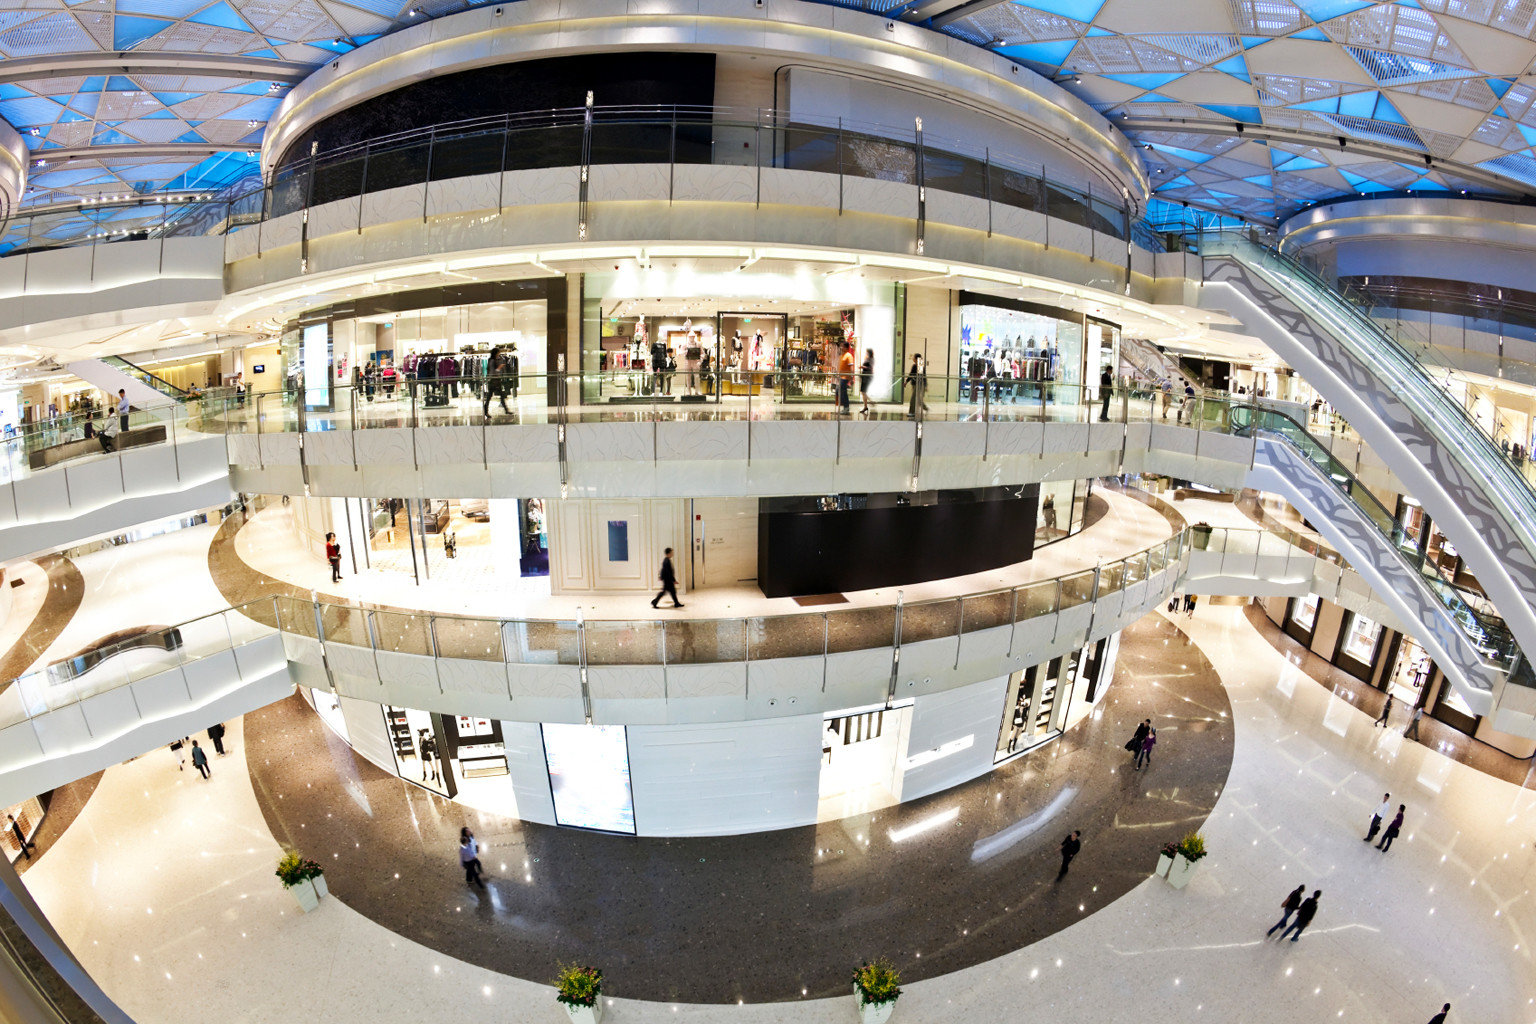 Elegant Hip Lounge Luxury Modern structure shopping mall plaza Architecture sport venue arena ice rink stadium Water park retail convention center dome dock